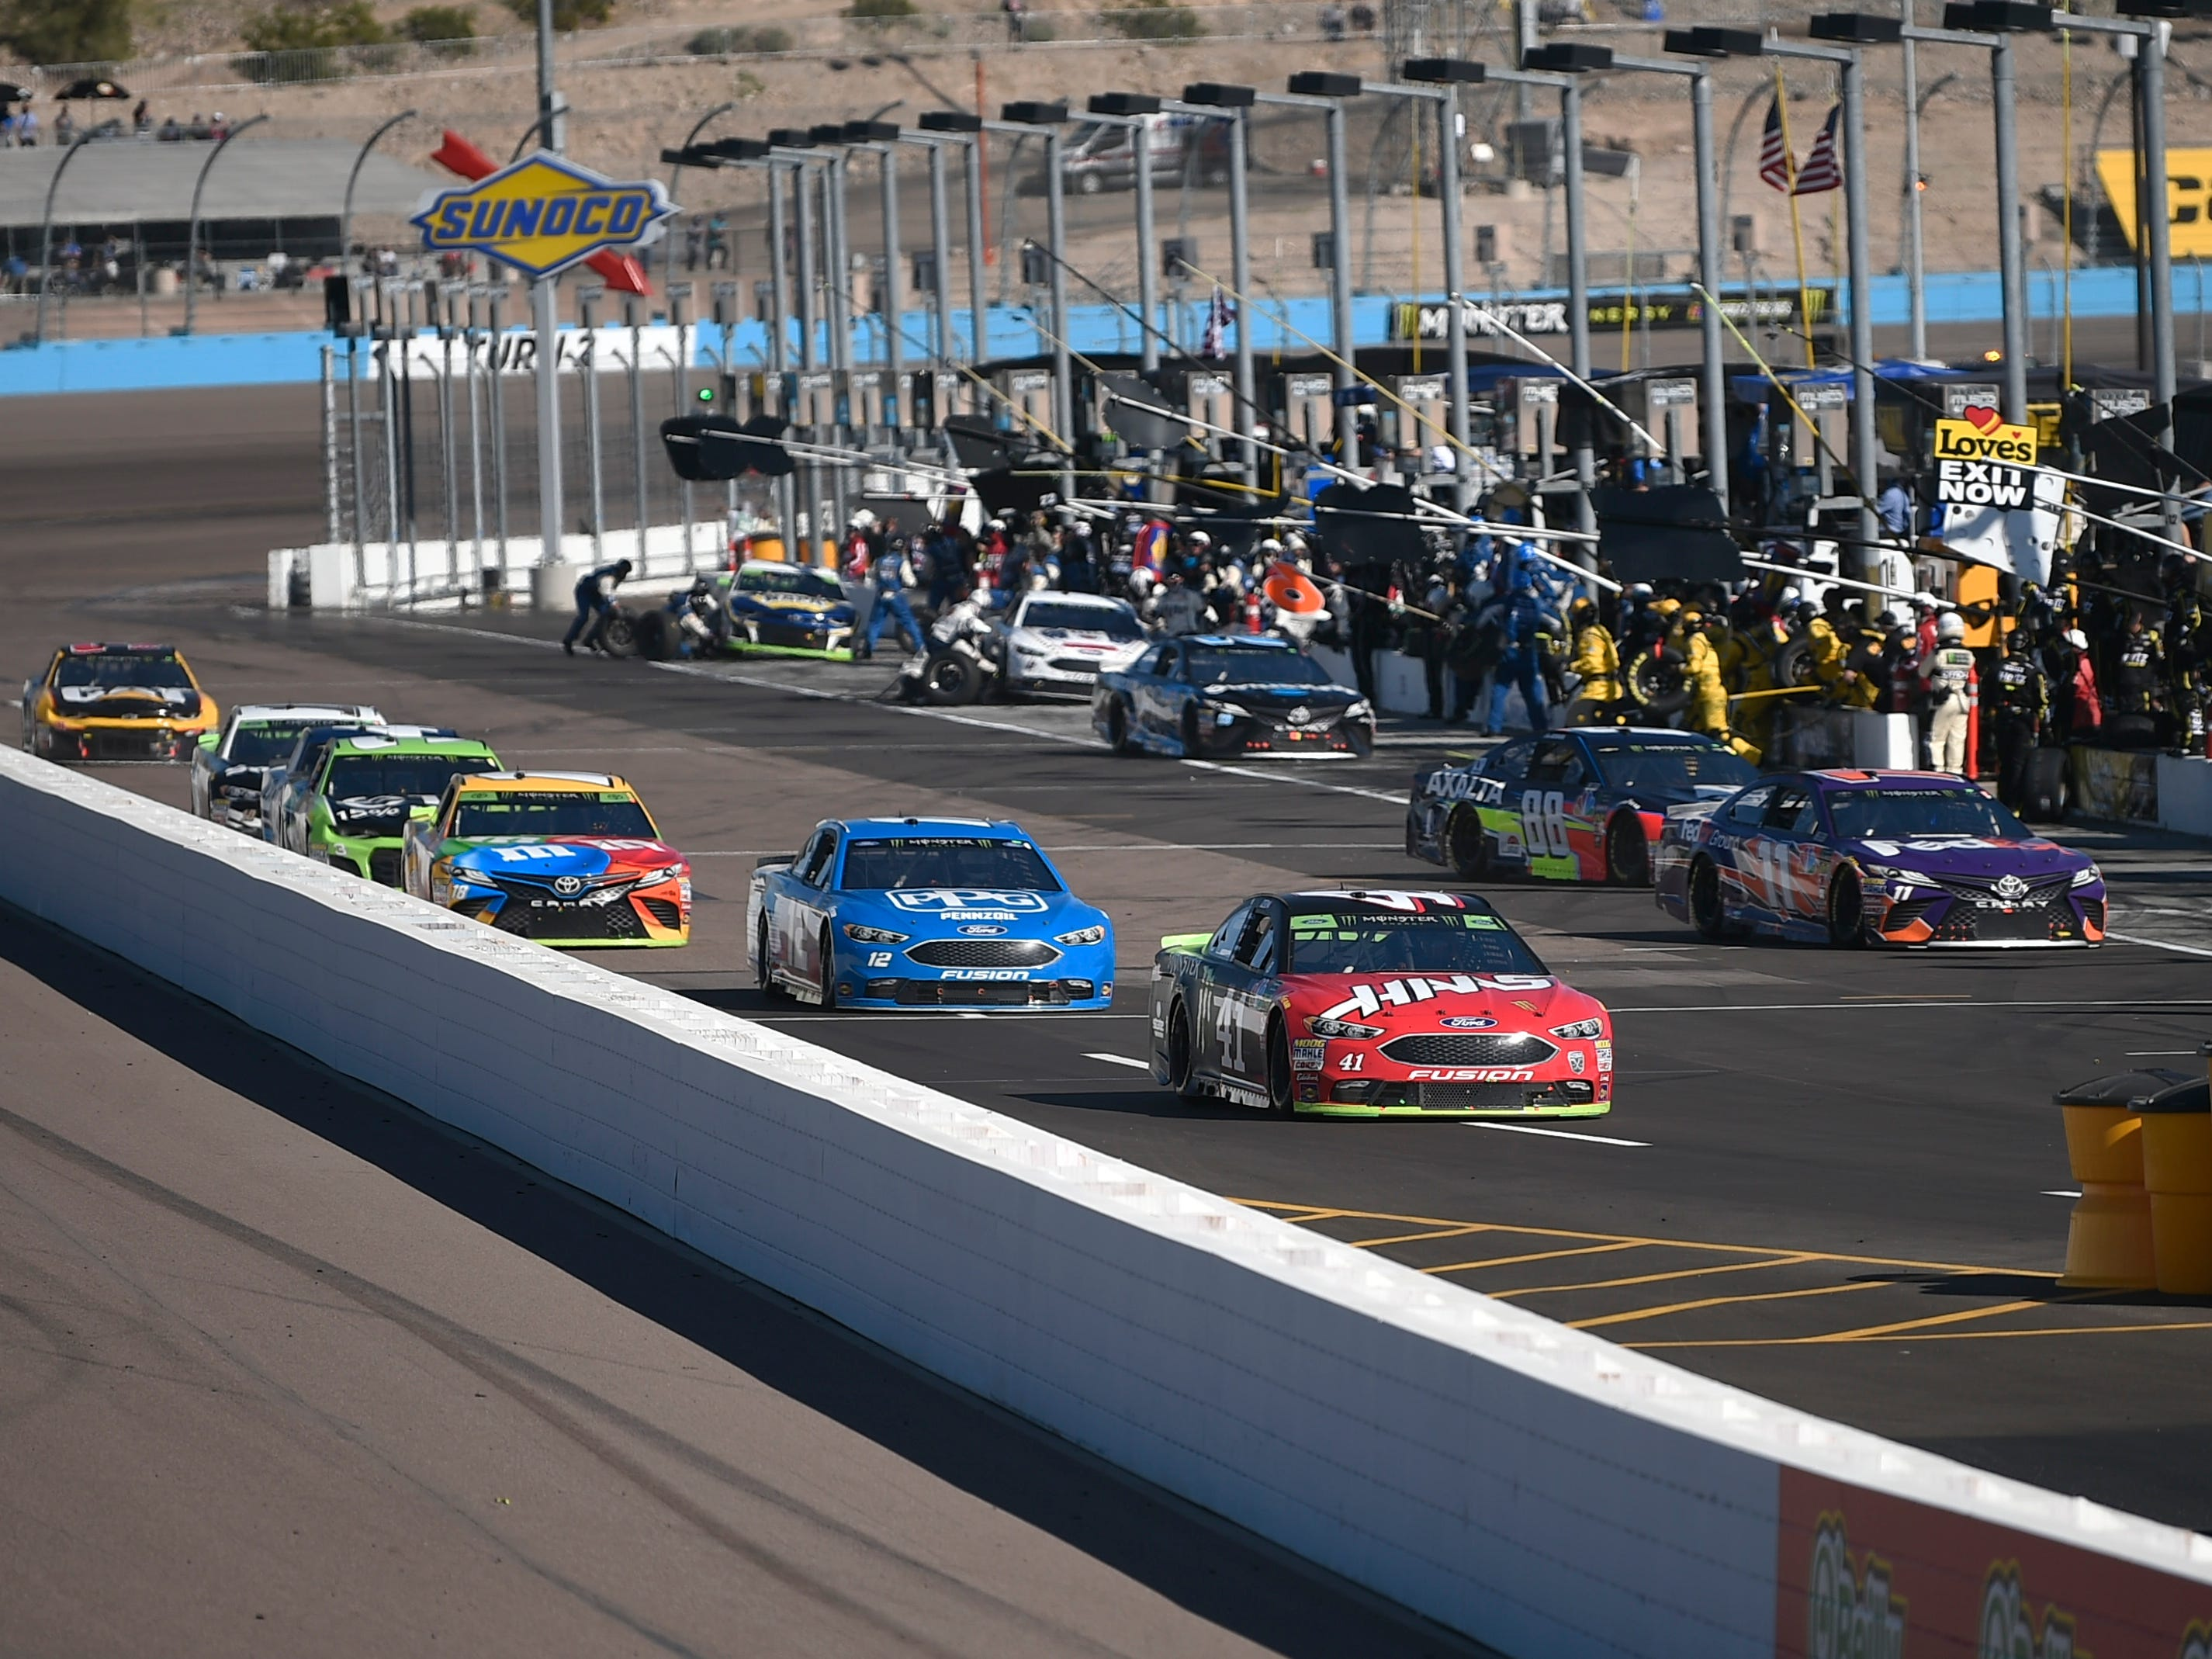 Nov 11, 2018; Avondale, AZ, USA; A general view as cars head into pit row during the Can-Am 500 at ISM Raceway. Mandatory Credit: Kelvin Kuo-USA TODAY Sports